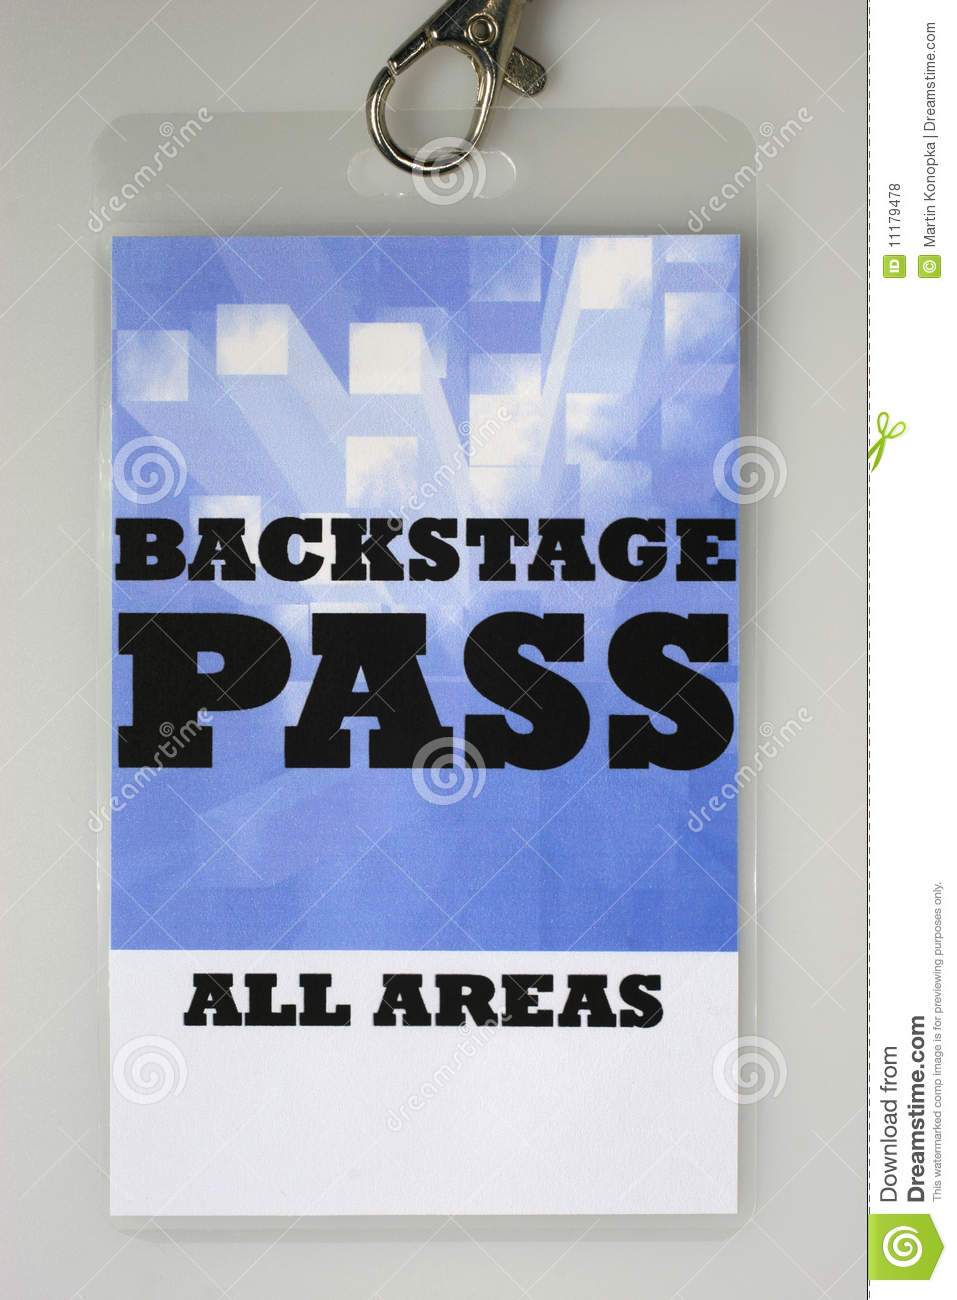 backstage business plan